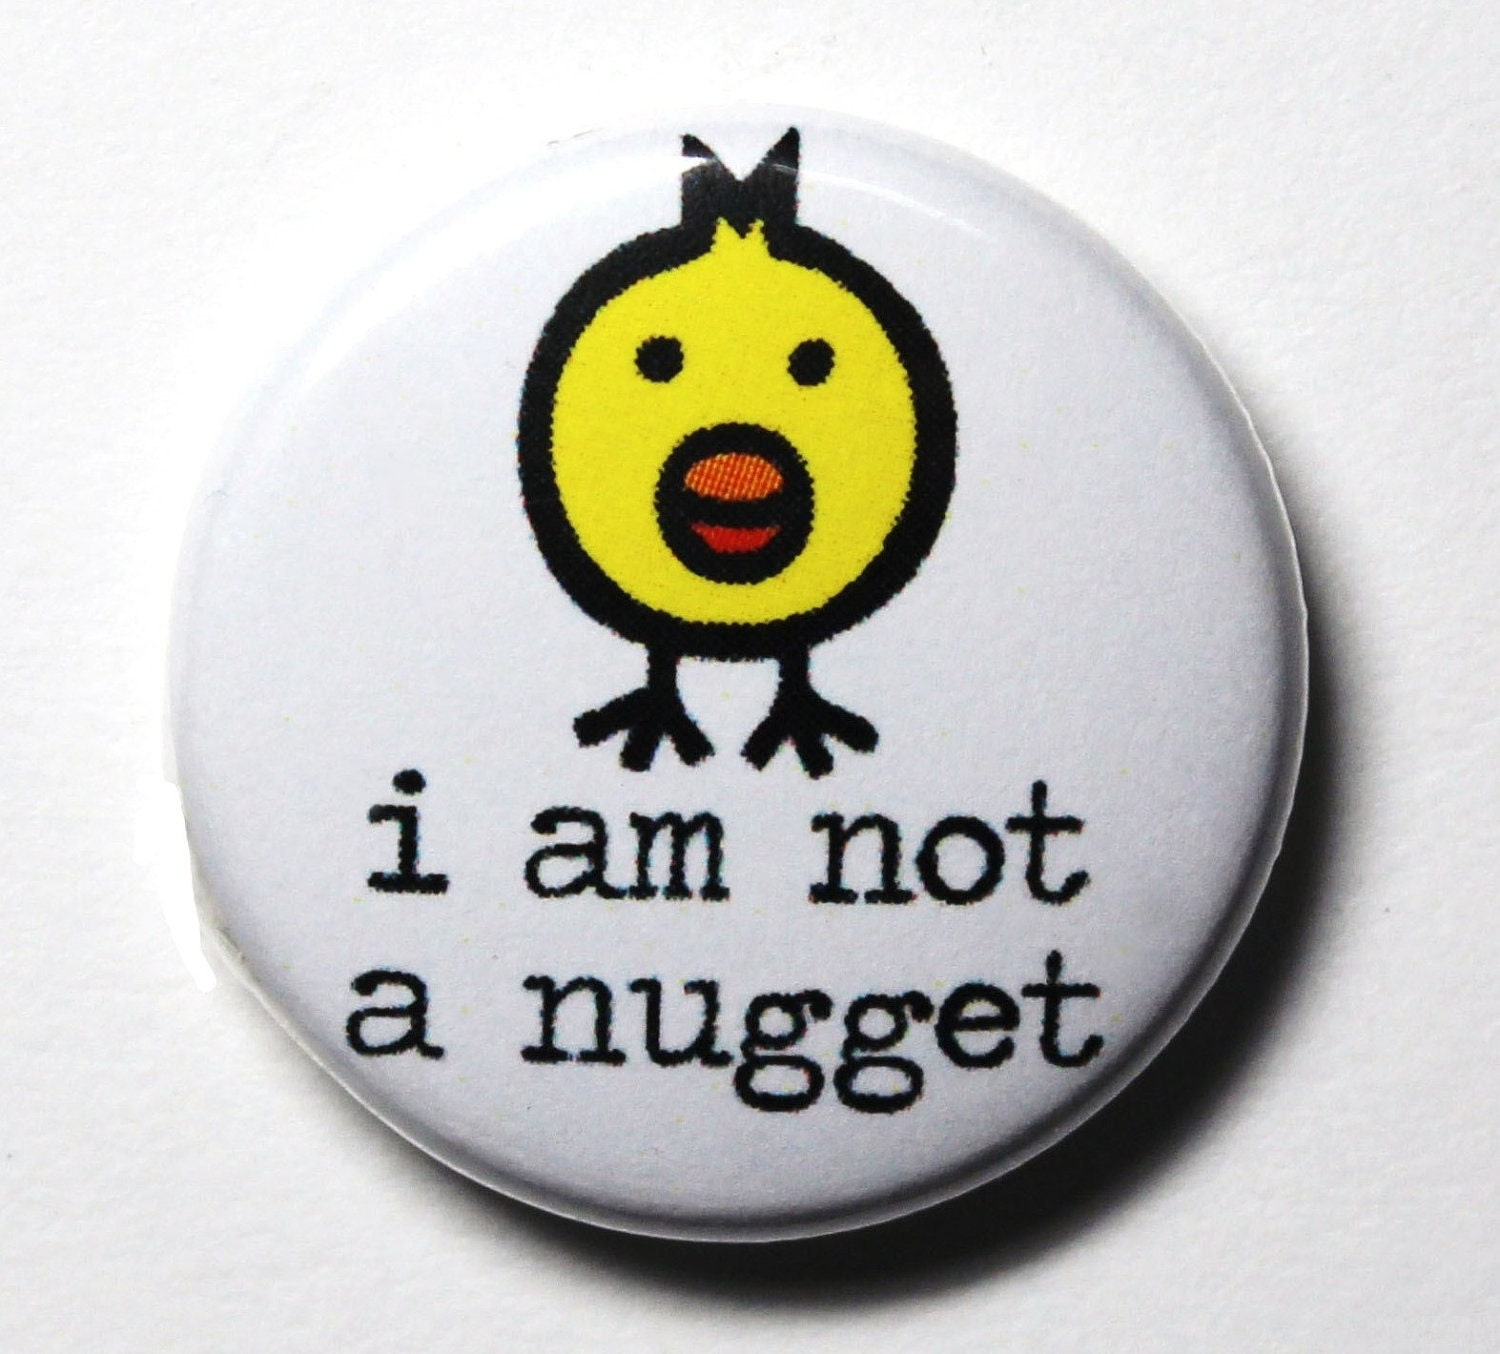 I Am Not A Nugget, Vegan, Vegetarian, Chicken Nugget - PIN or MAGNET